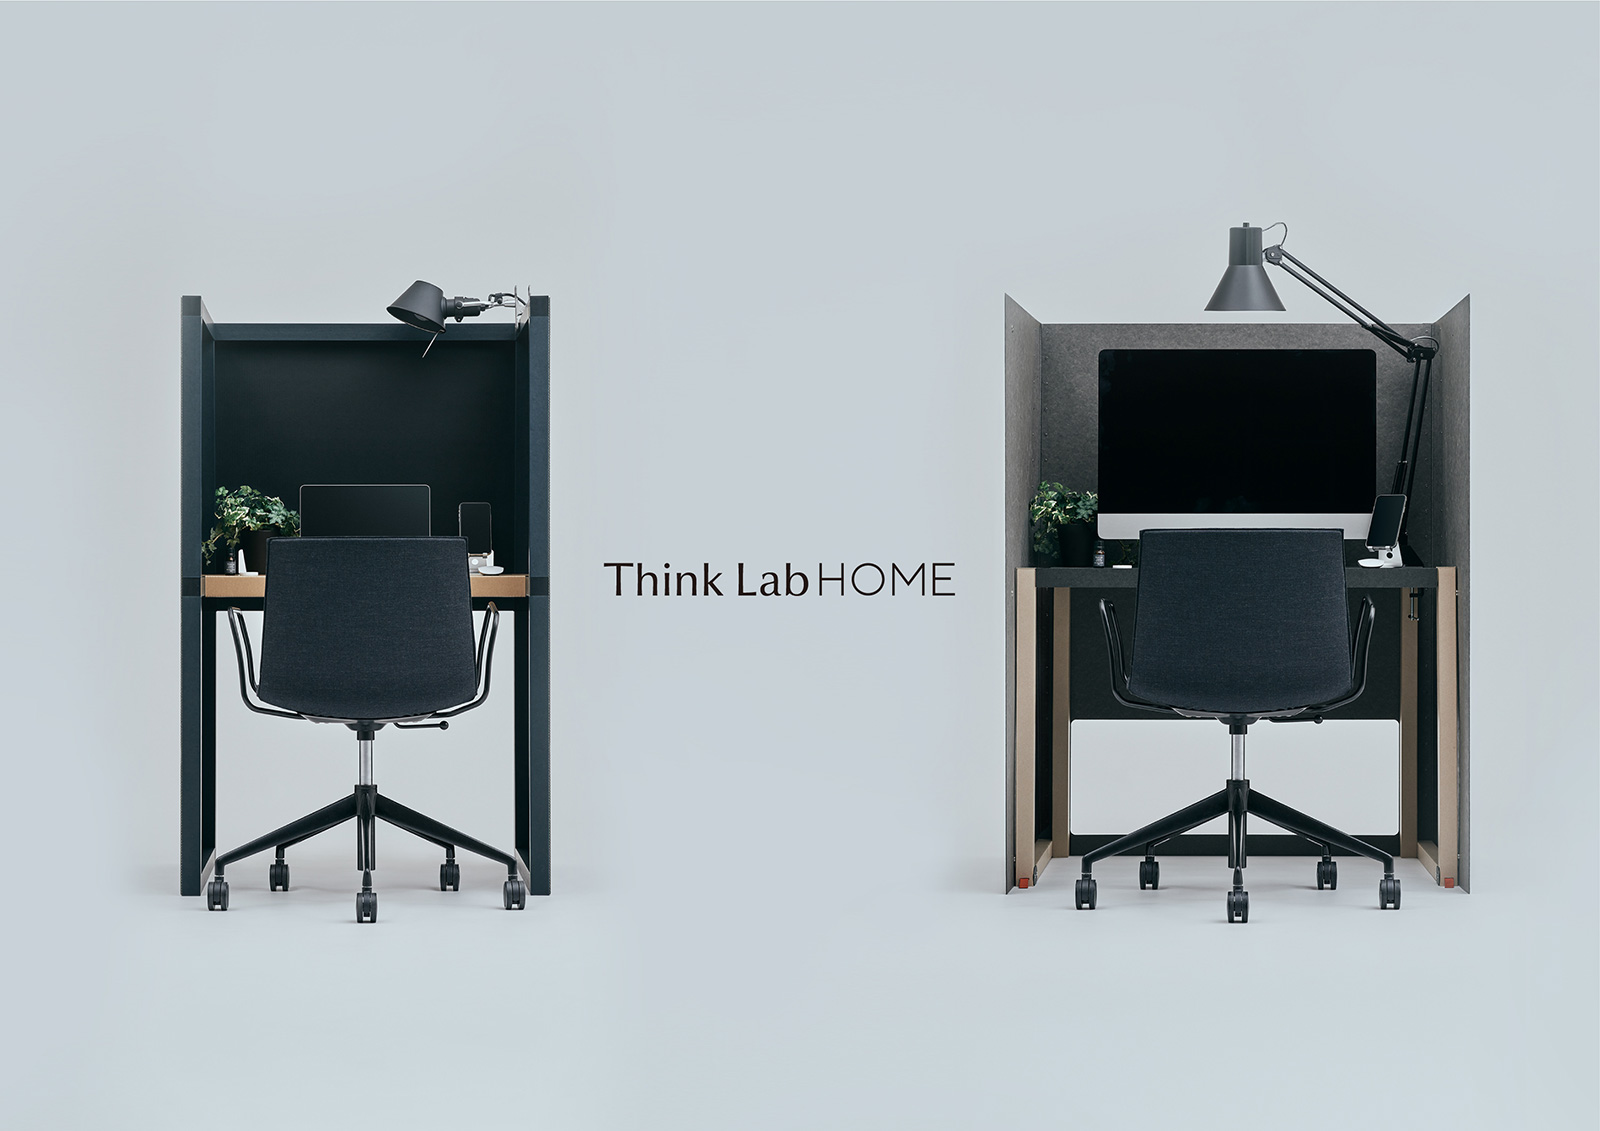 Think Lab HOME